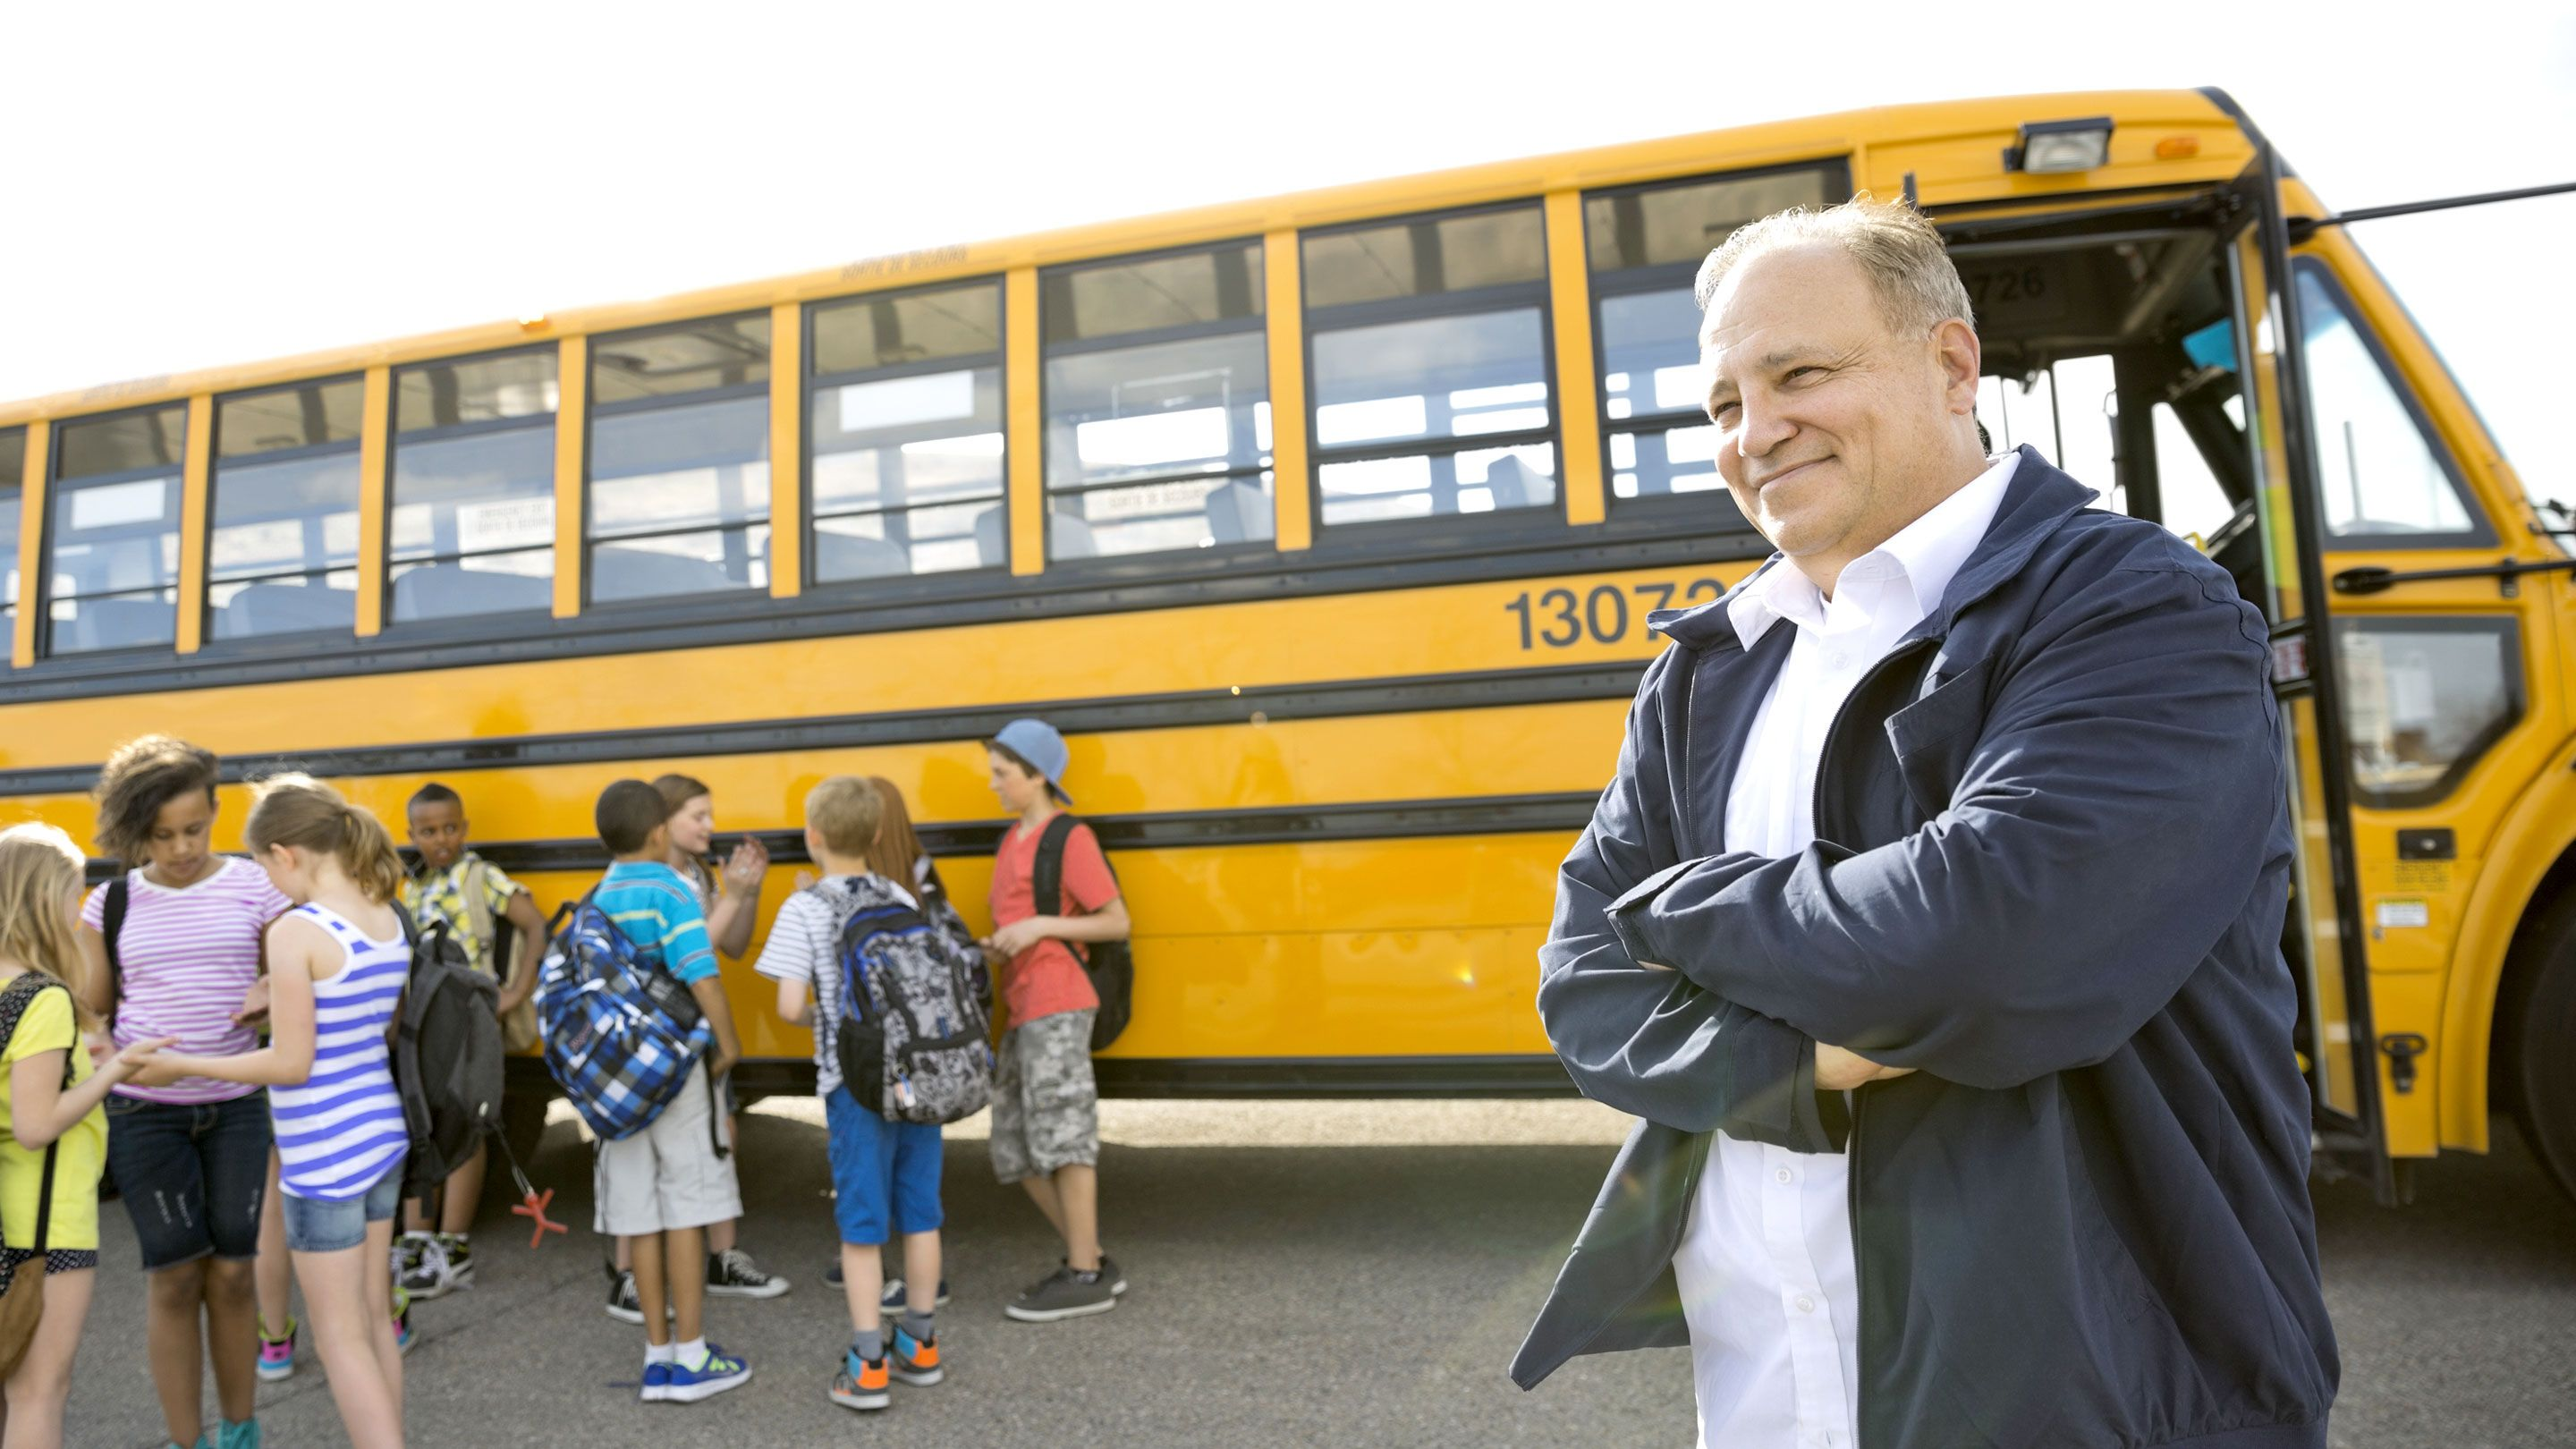 Building Students Resilience on the Bus